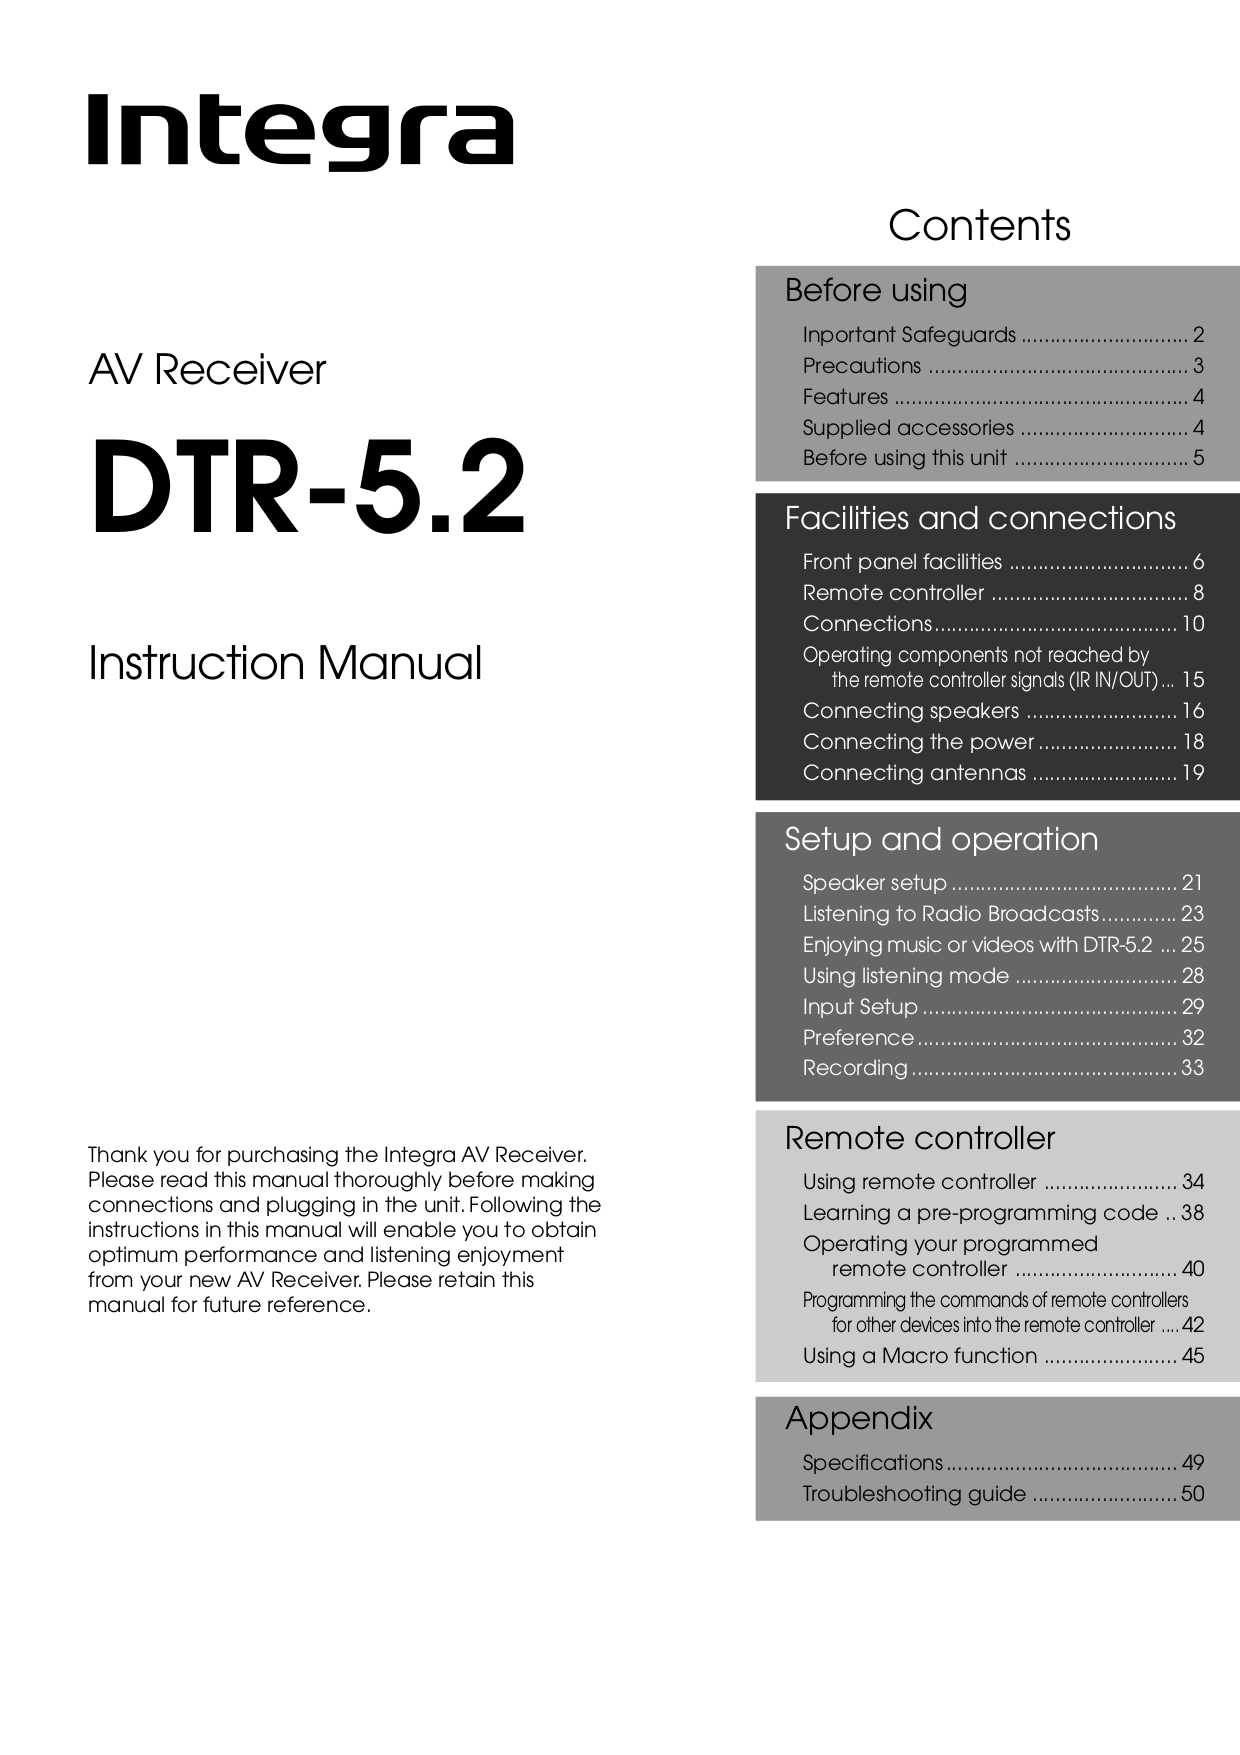 pdf for Integra Receiver DTR-5.2 manual